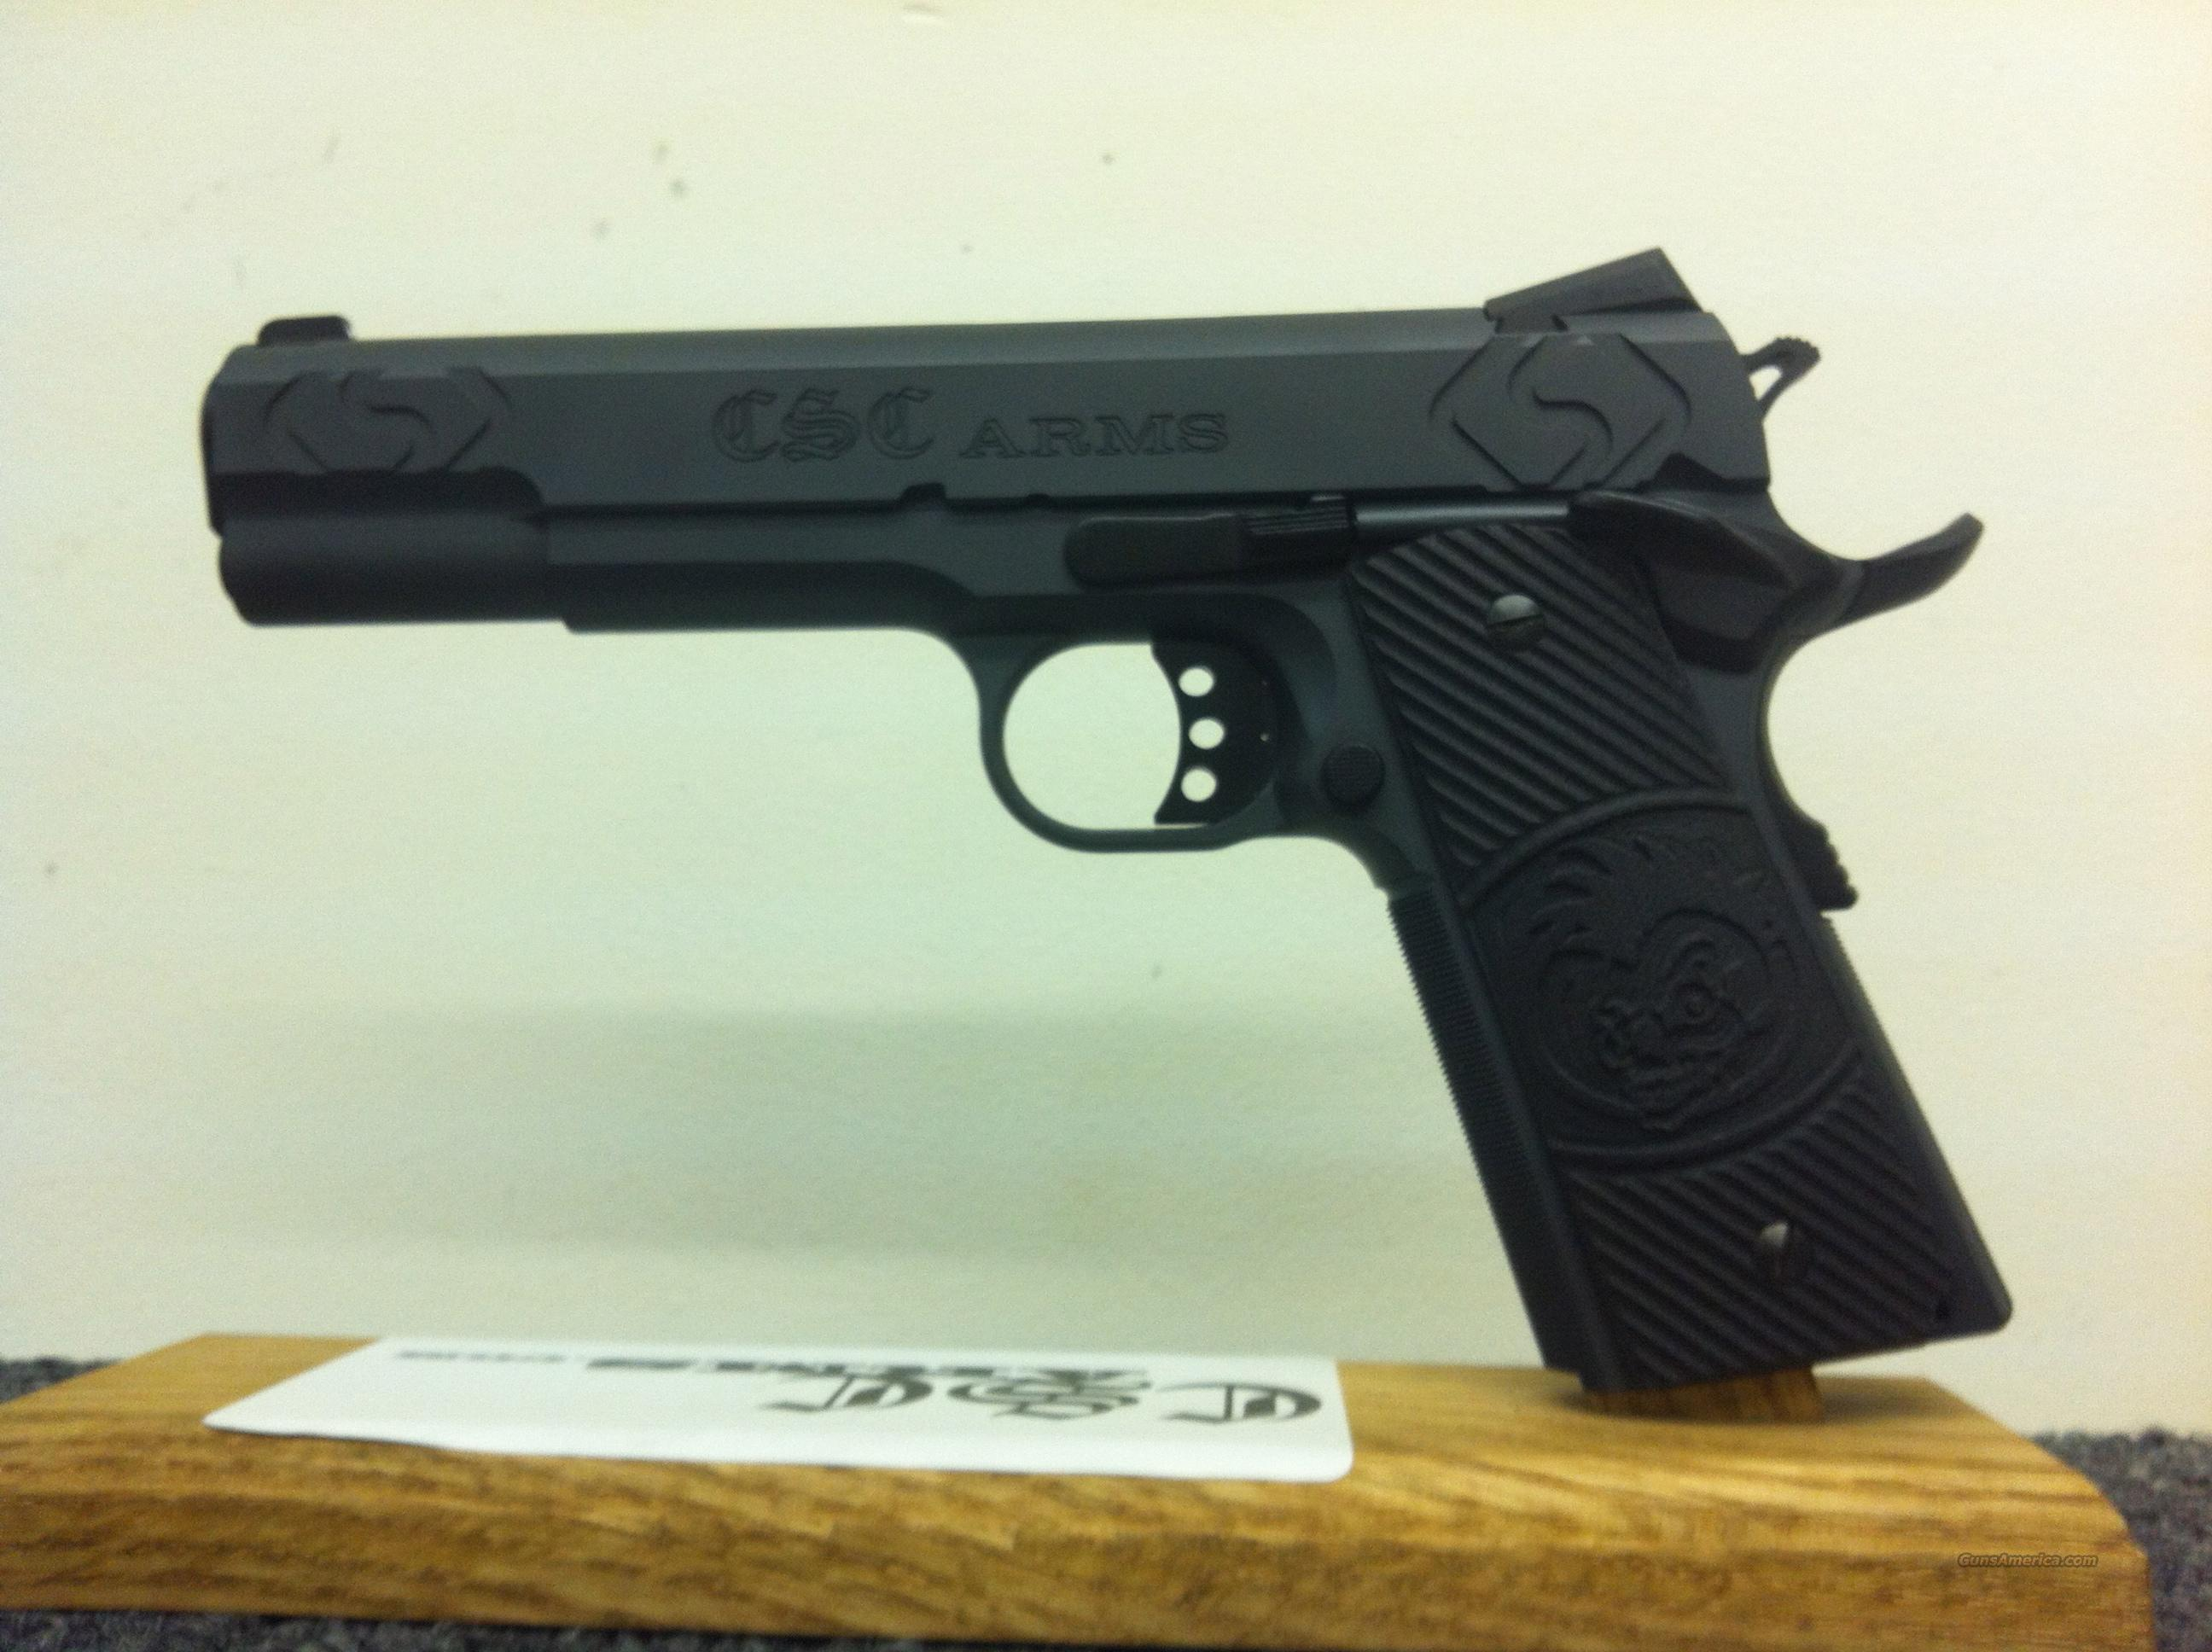 CSC ARMS 1911 .45ACP Custom Hand Fitted.  Guns > Pistols > 1911 Pistol Copies (non-Colt)